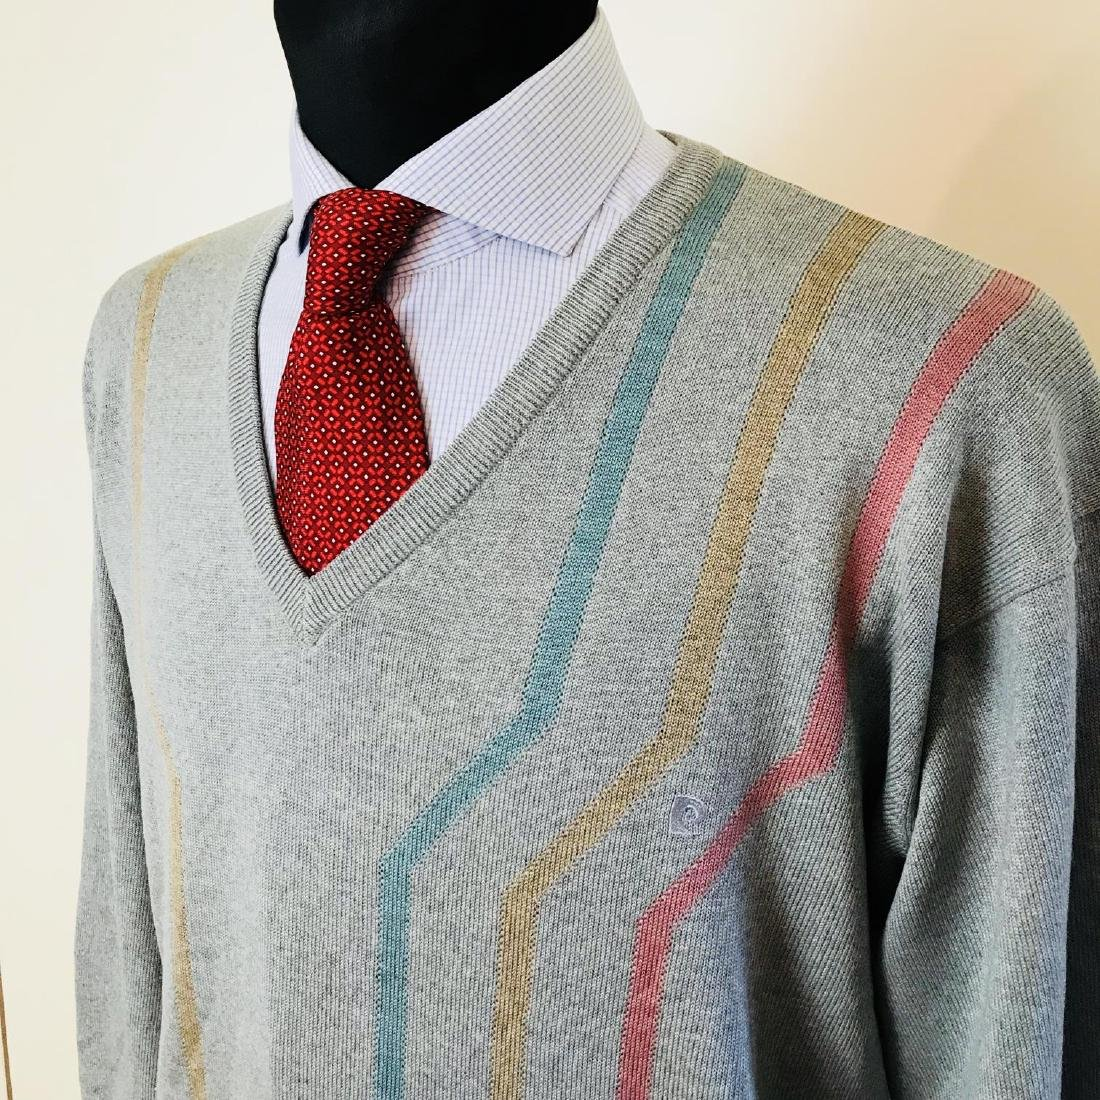 Vintage Men's Pierre Cardin Wool Sweater Size L - 2